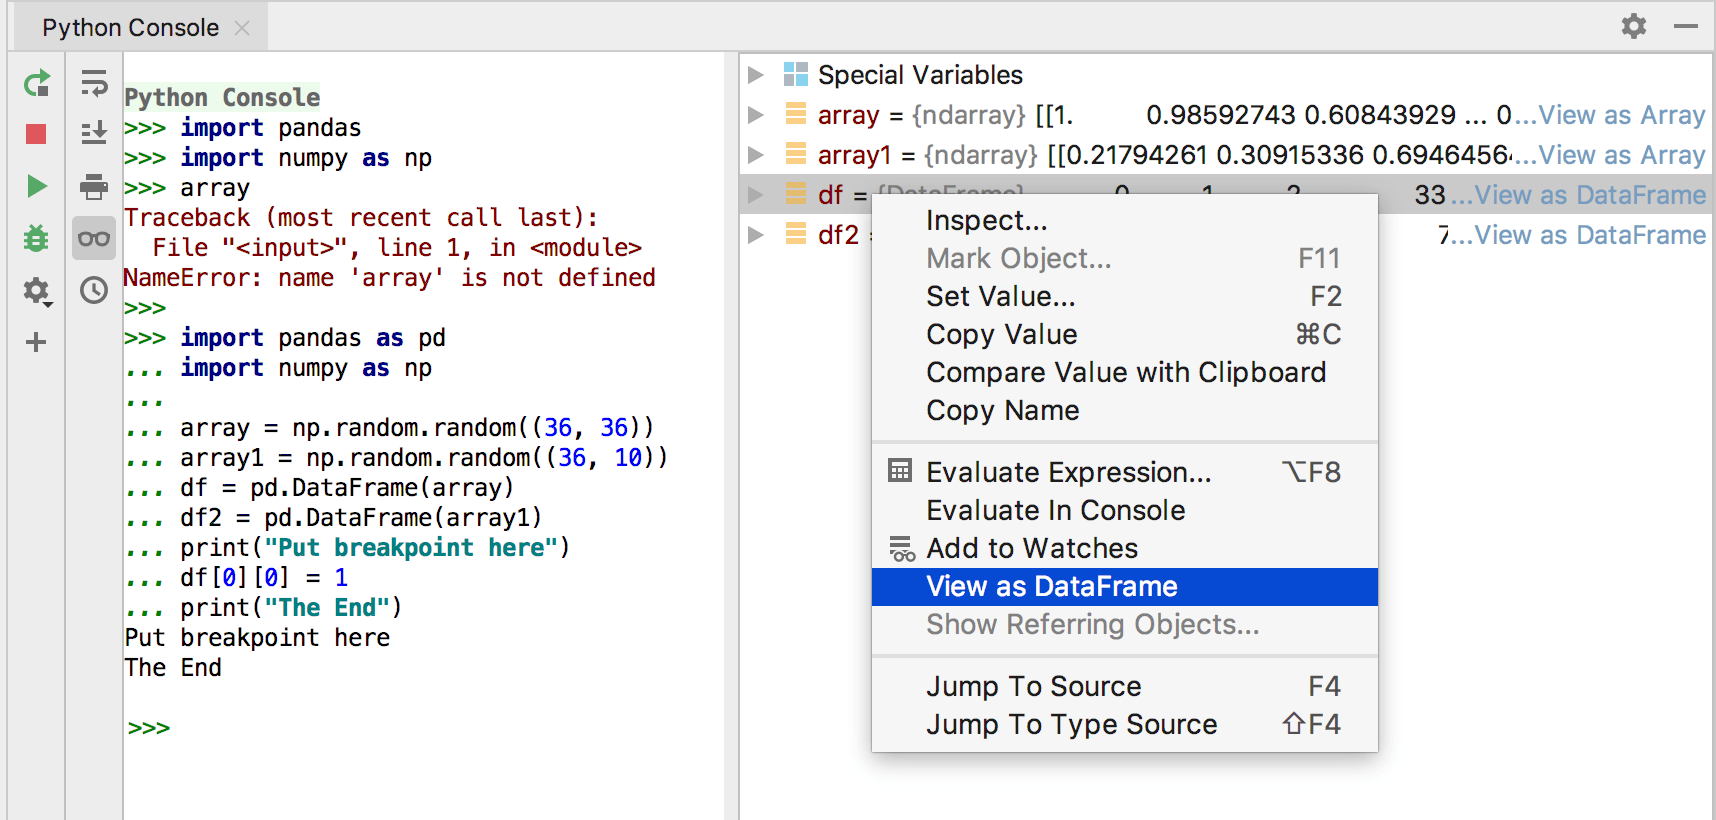 Viewing variables in data frames when running from Python console